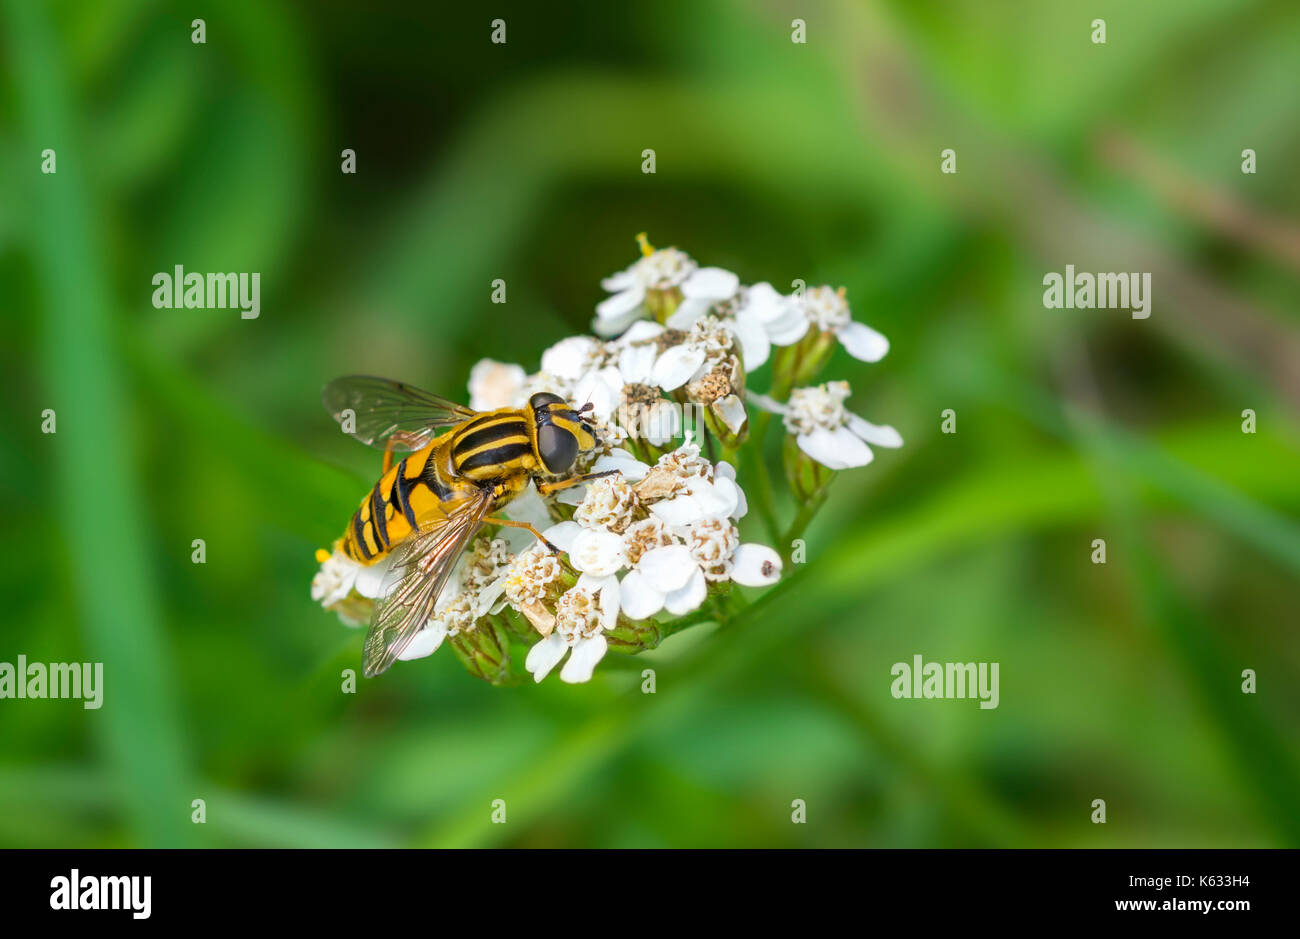 Helophilus pendulus (European Hoverfly) AKA The Footballer, The Sunfly, Common Tiger Hoverfly, on a flower in early Autumn in West Sussex, England, UK - Stock Image